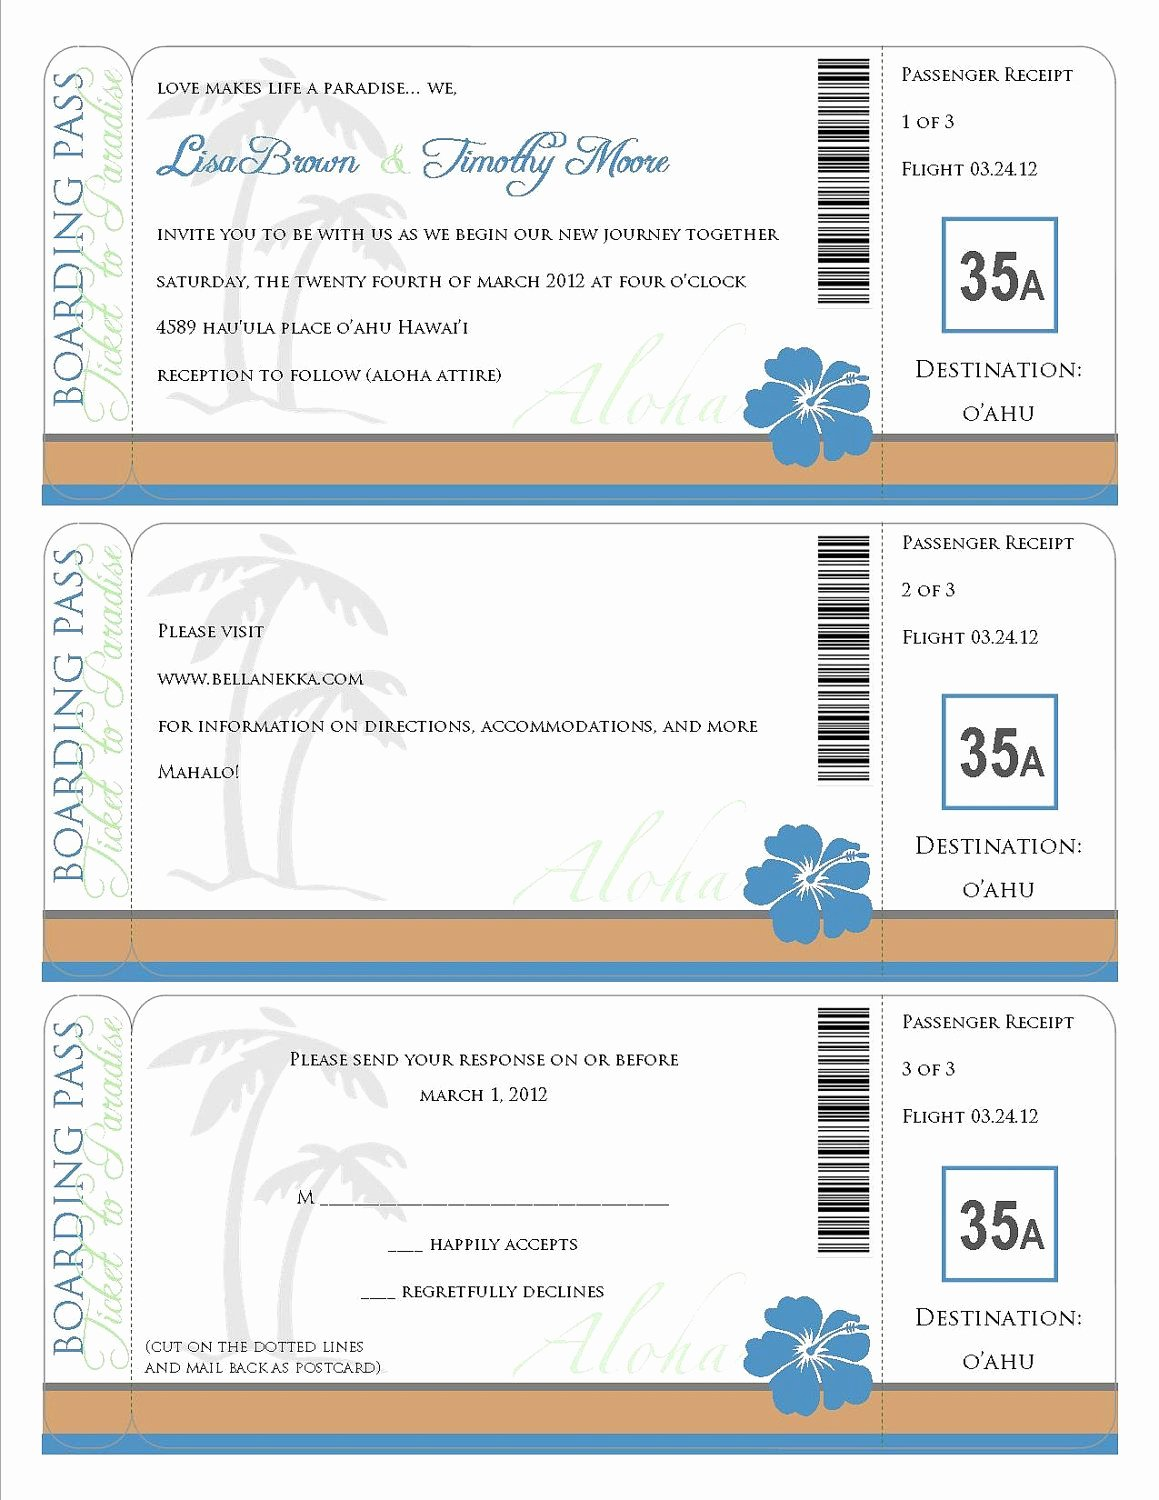 Boarding Pass Template Free Inspirational Printable Boarding Pass Travel Information Invitation